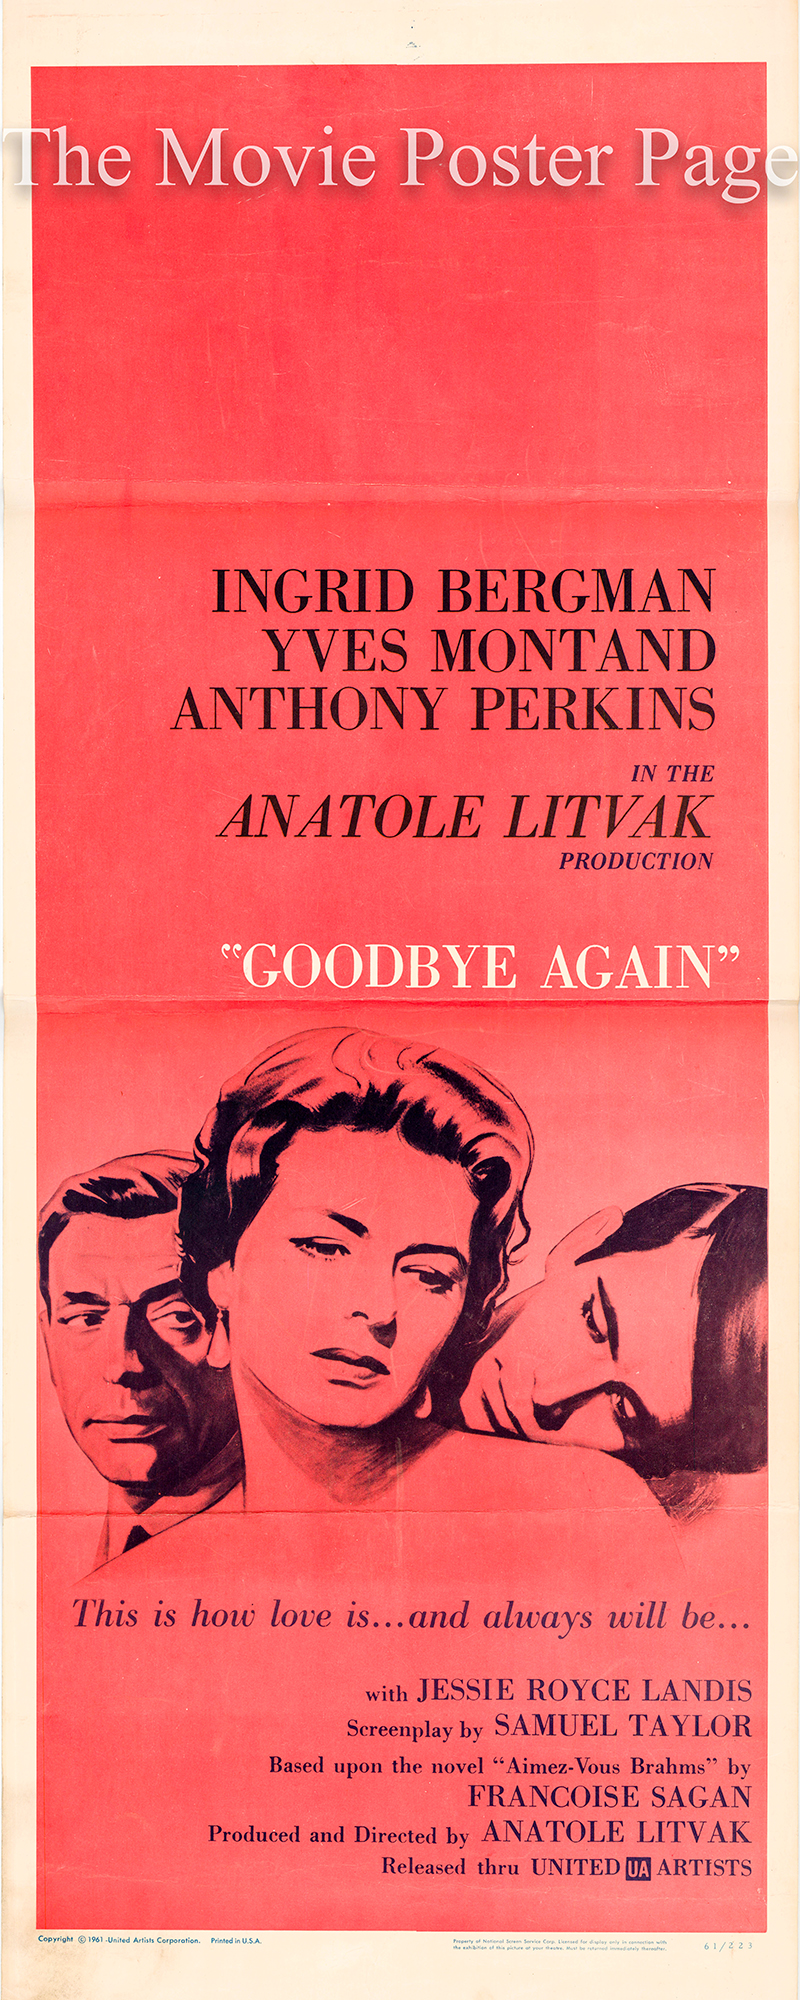 Pictured is a US insert poster for the 1961 Anatole Litvak film Goodbye Again starring Ingrid Bergman.